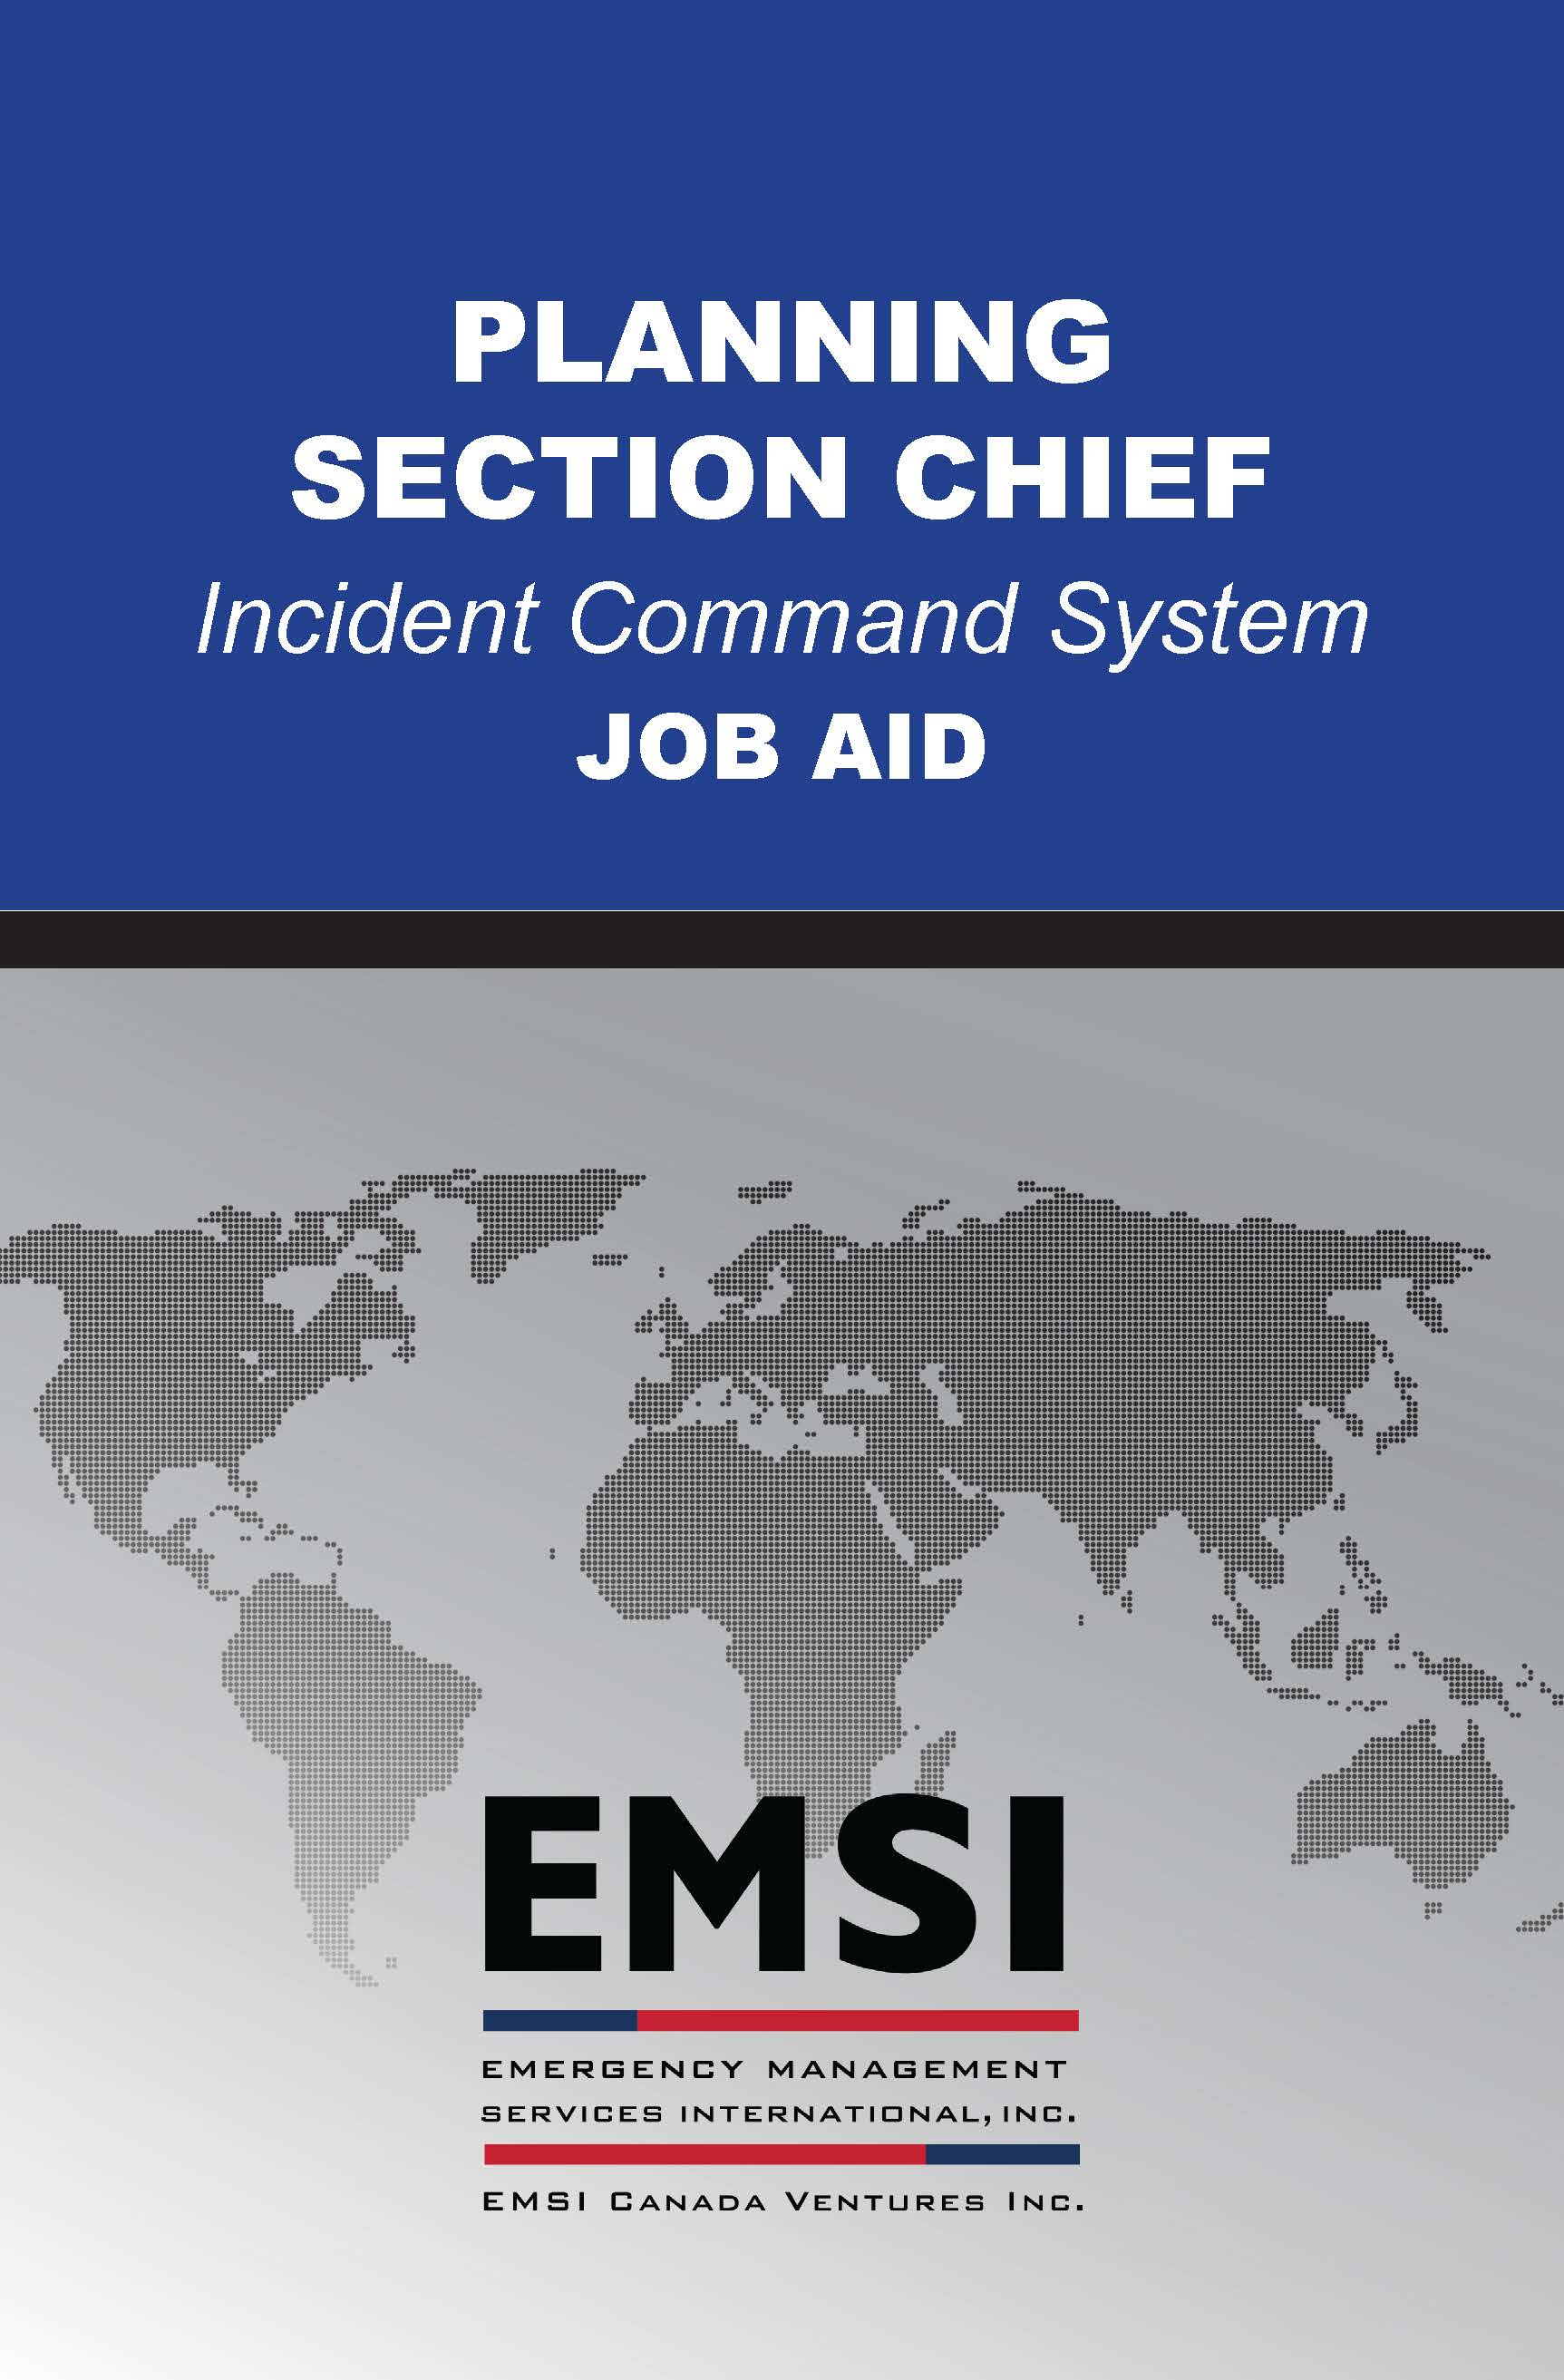 ICS-440 Planning Section Chief - EMSI